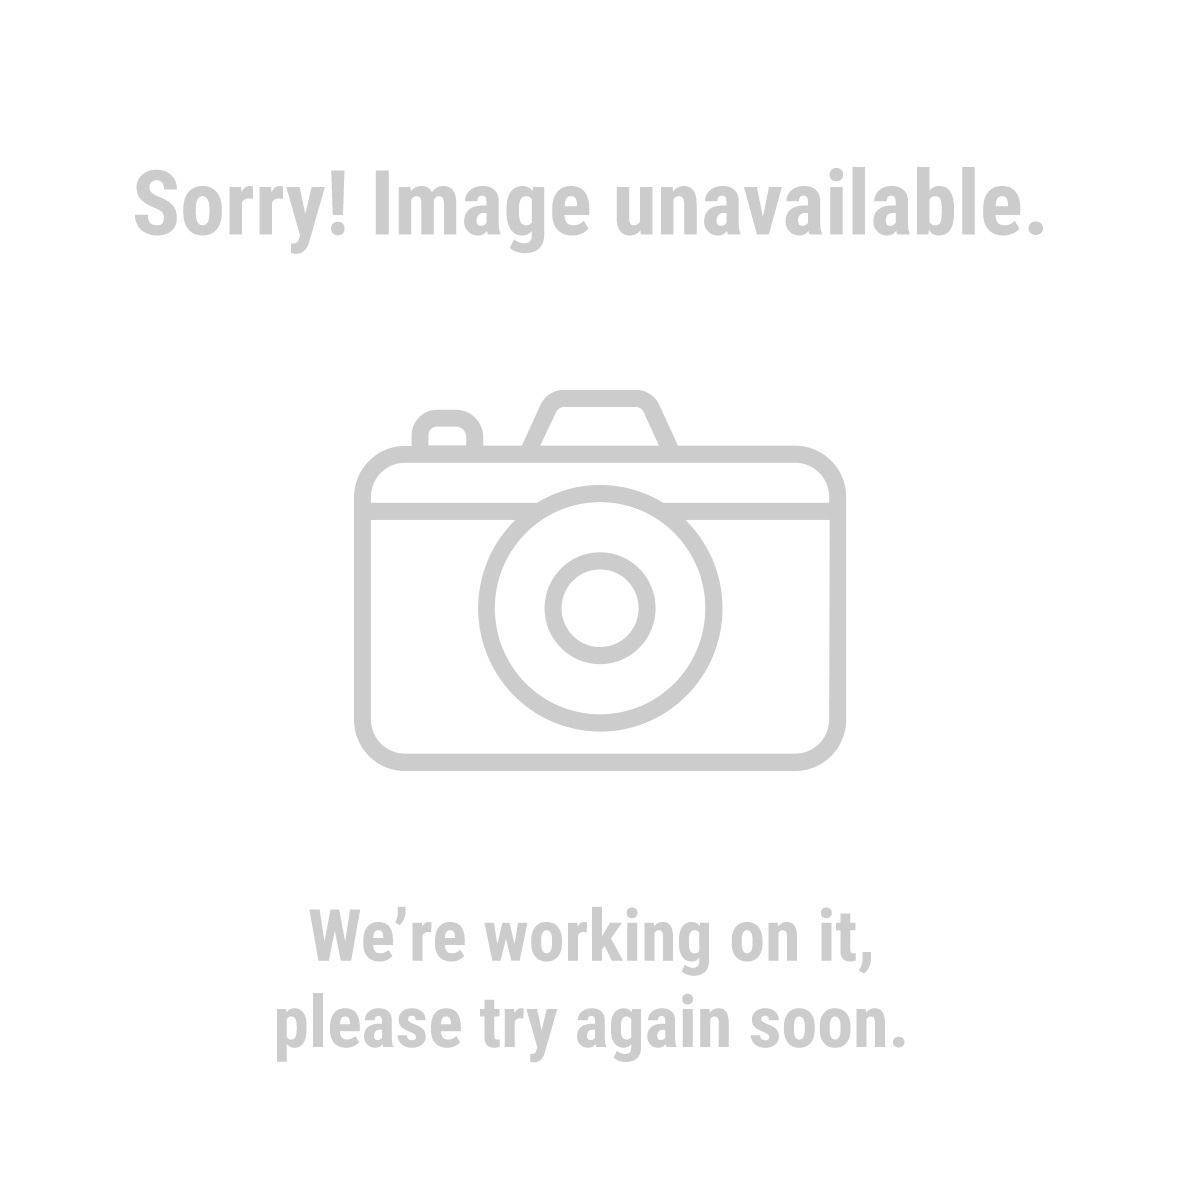 Pittsburgh 96616 6 Piece Square Drive Bit Set